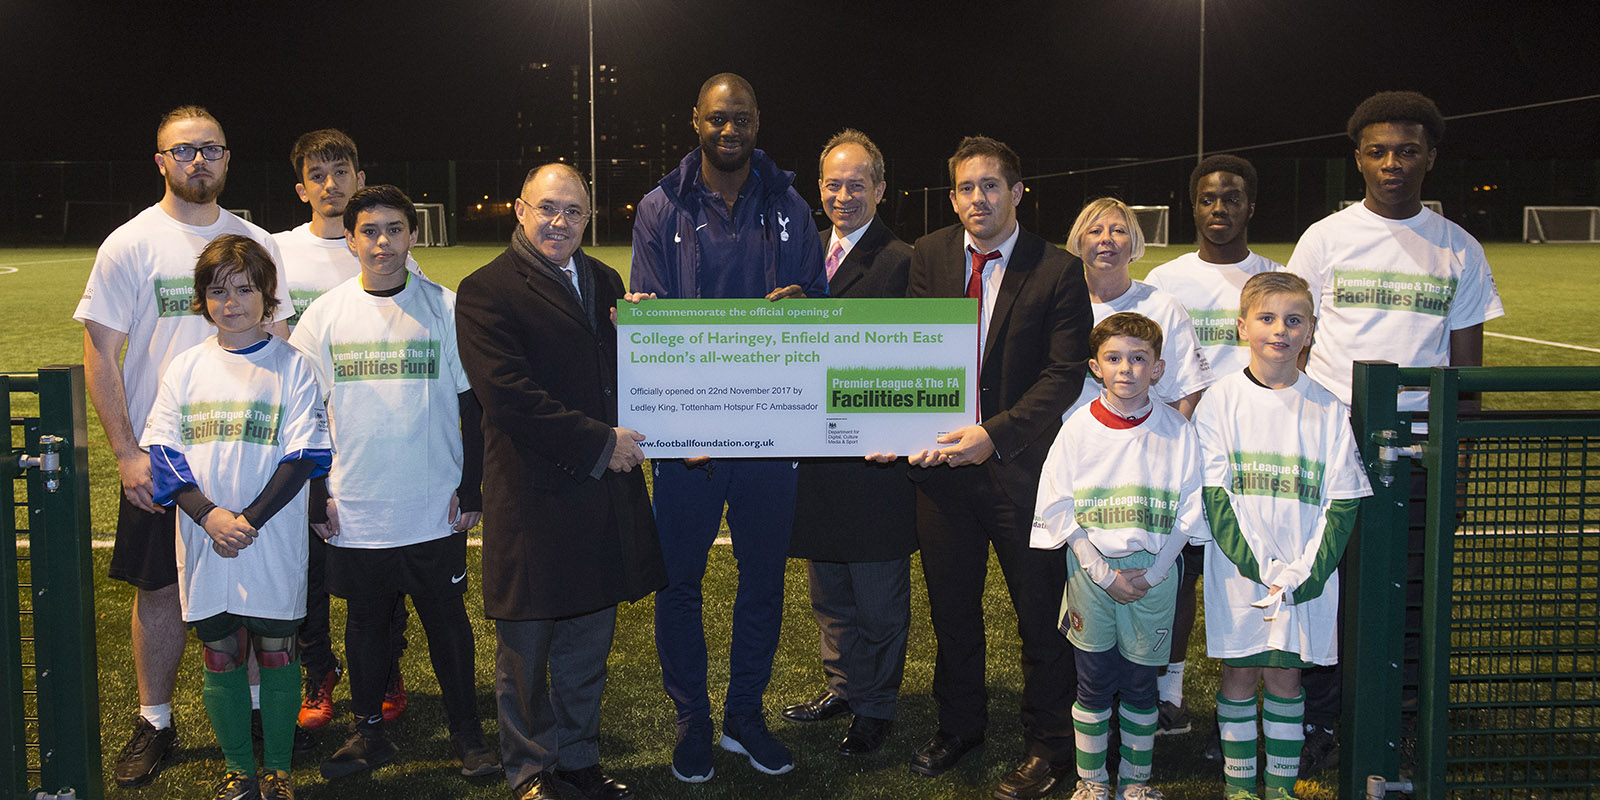 Ledley King unveils the new all-weather pitch at The College of Haringey, Enfield and North East London